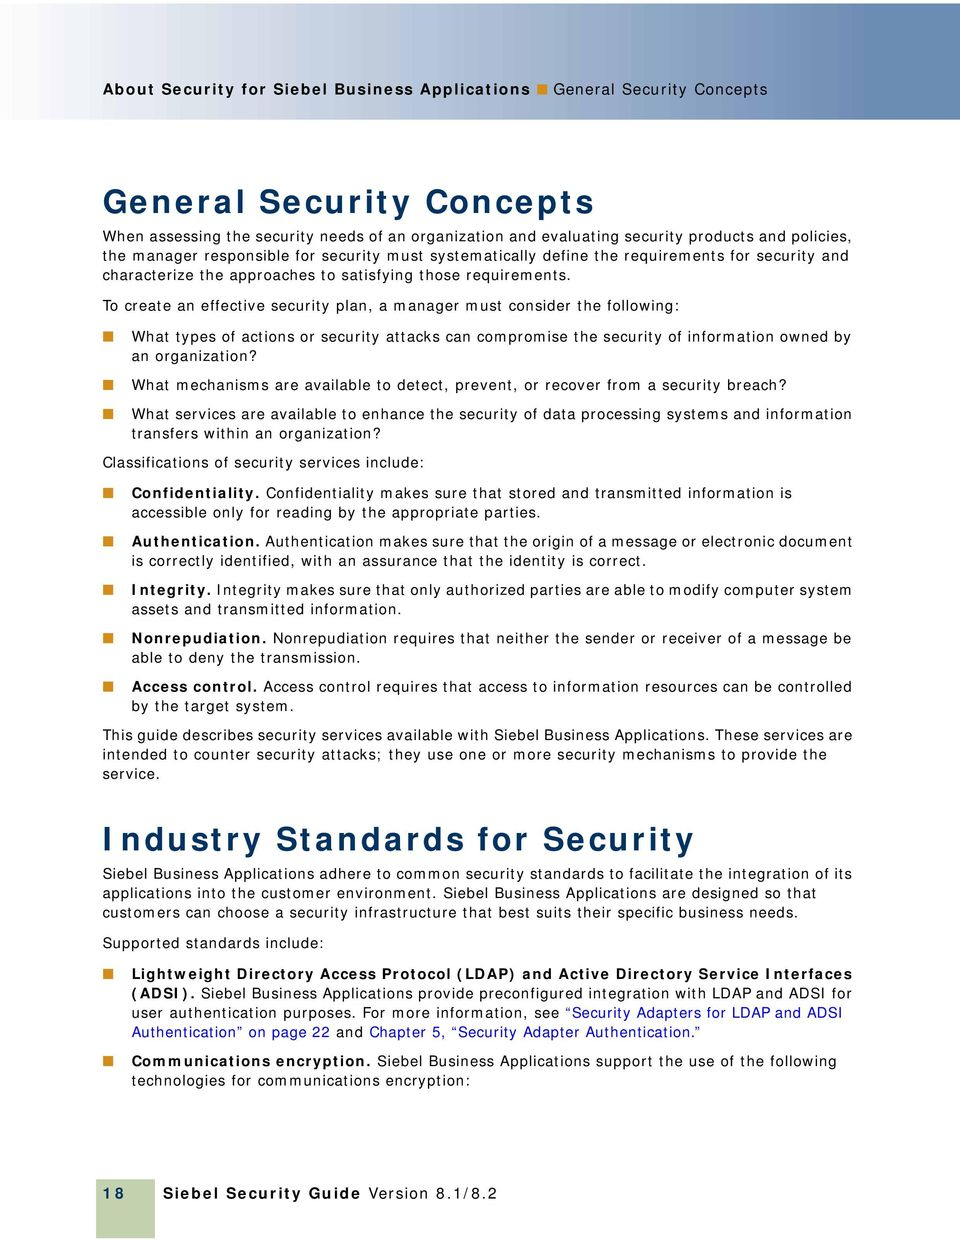 To create an effective security plan, a manager must consider the following: What types of actions or security attacks can compromise the security of information owned by an organization?